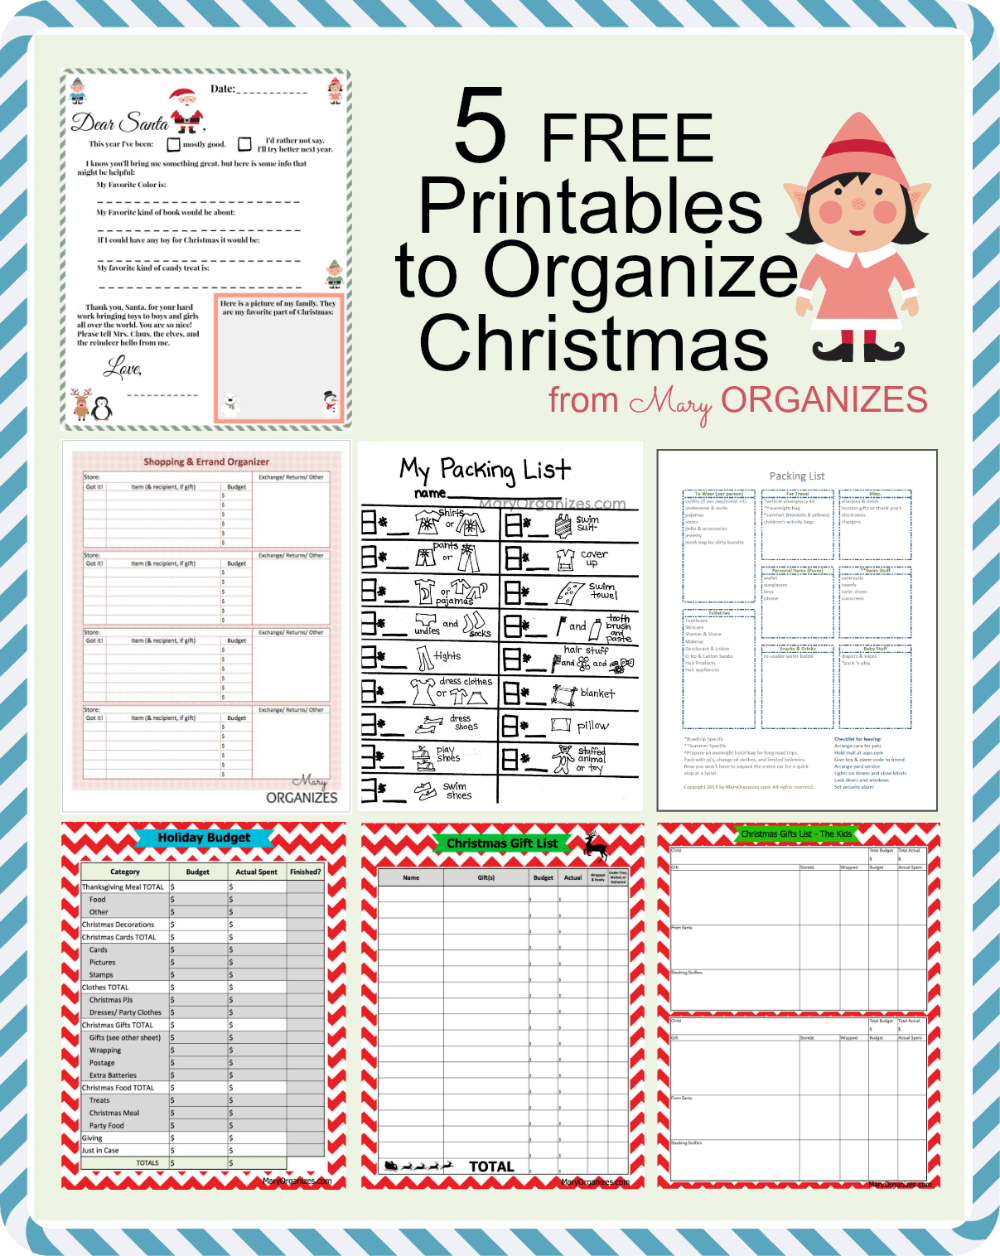 It's just a picture of Impertinent Free Printable Organizer